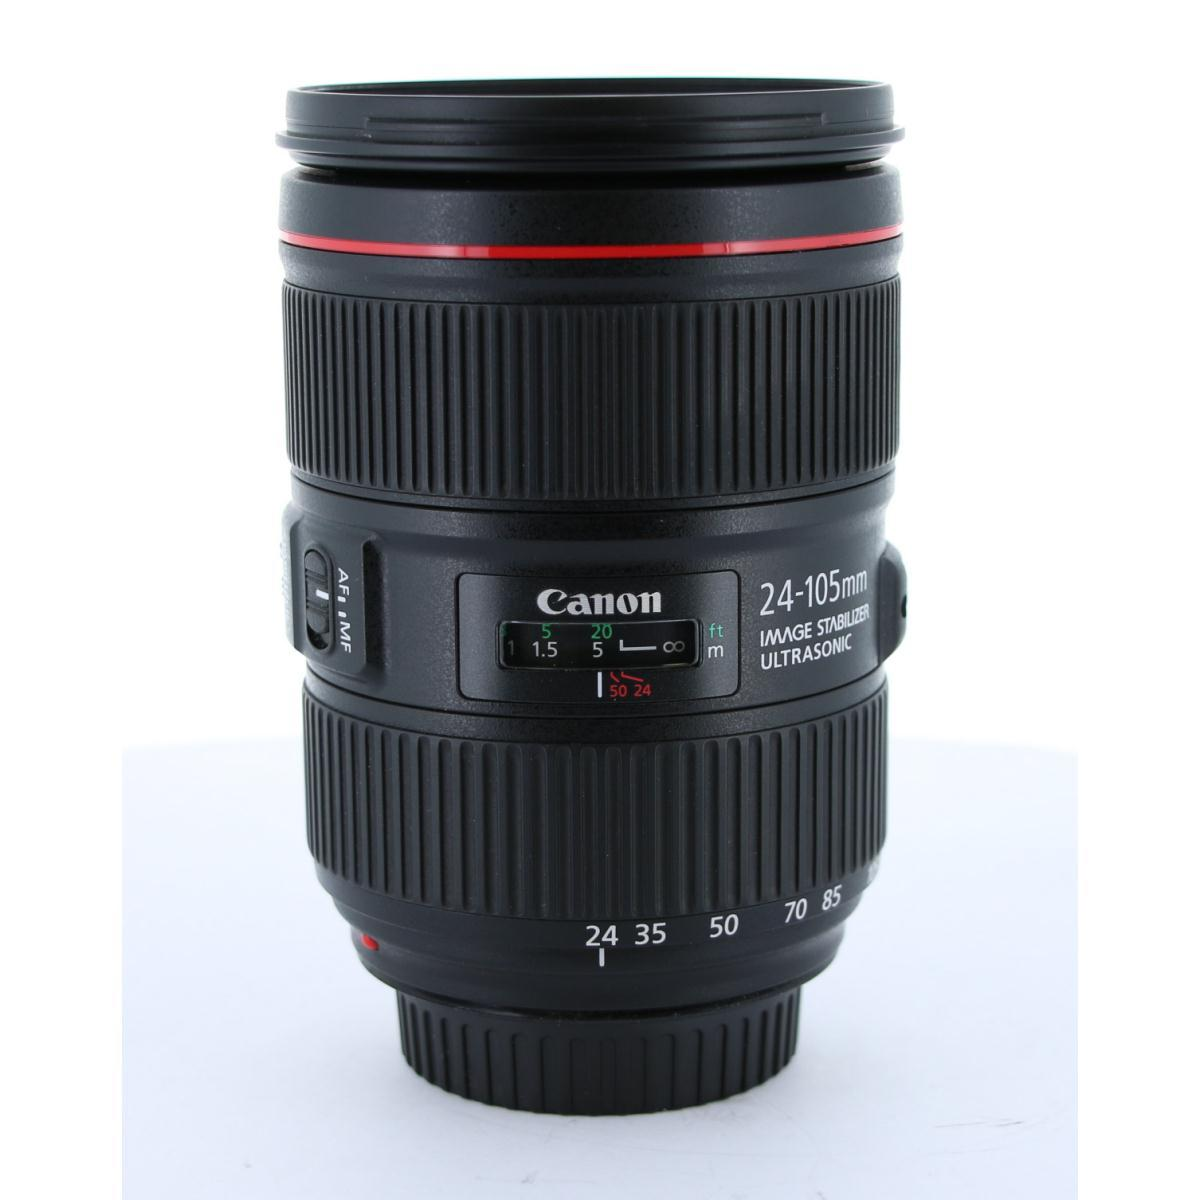 CANON EF24-105mm F4L ISII USM【中古】